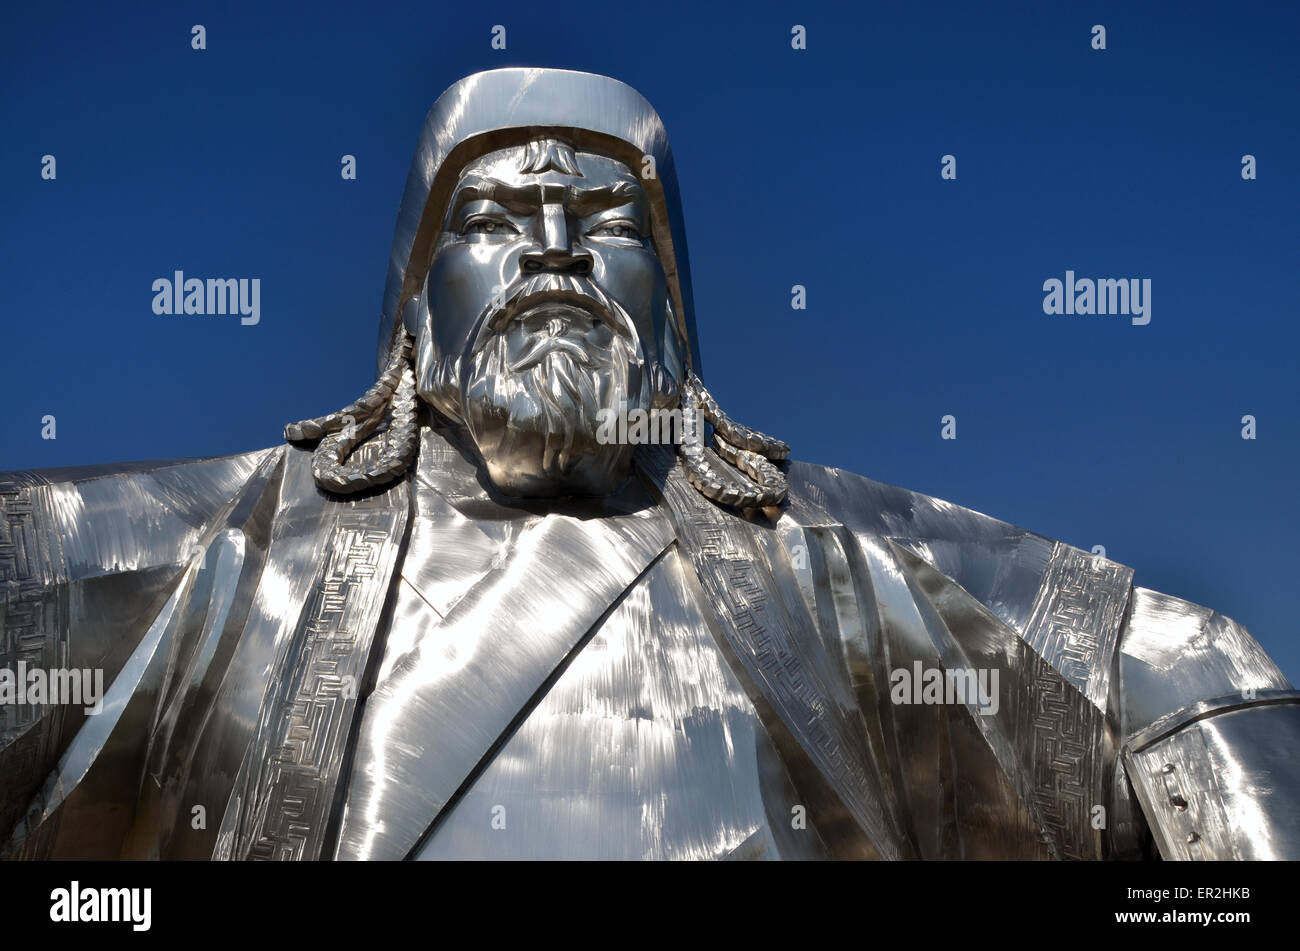 The giant statue dedicated to Genghis Khan, east of Ulan Bator, Tov province. The statue is 40 meters high. - Stock Image